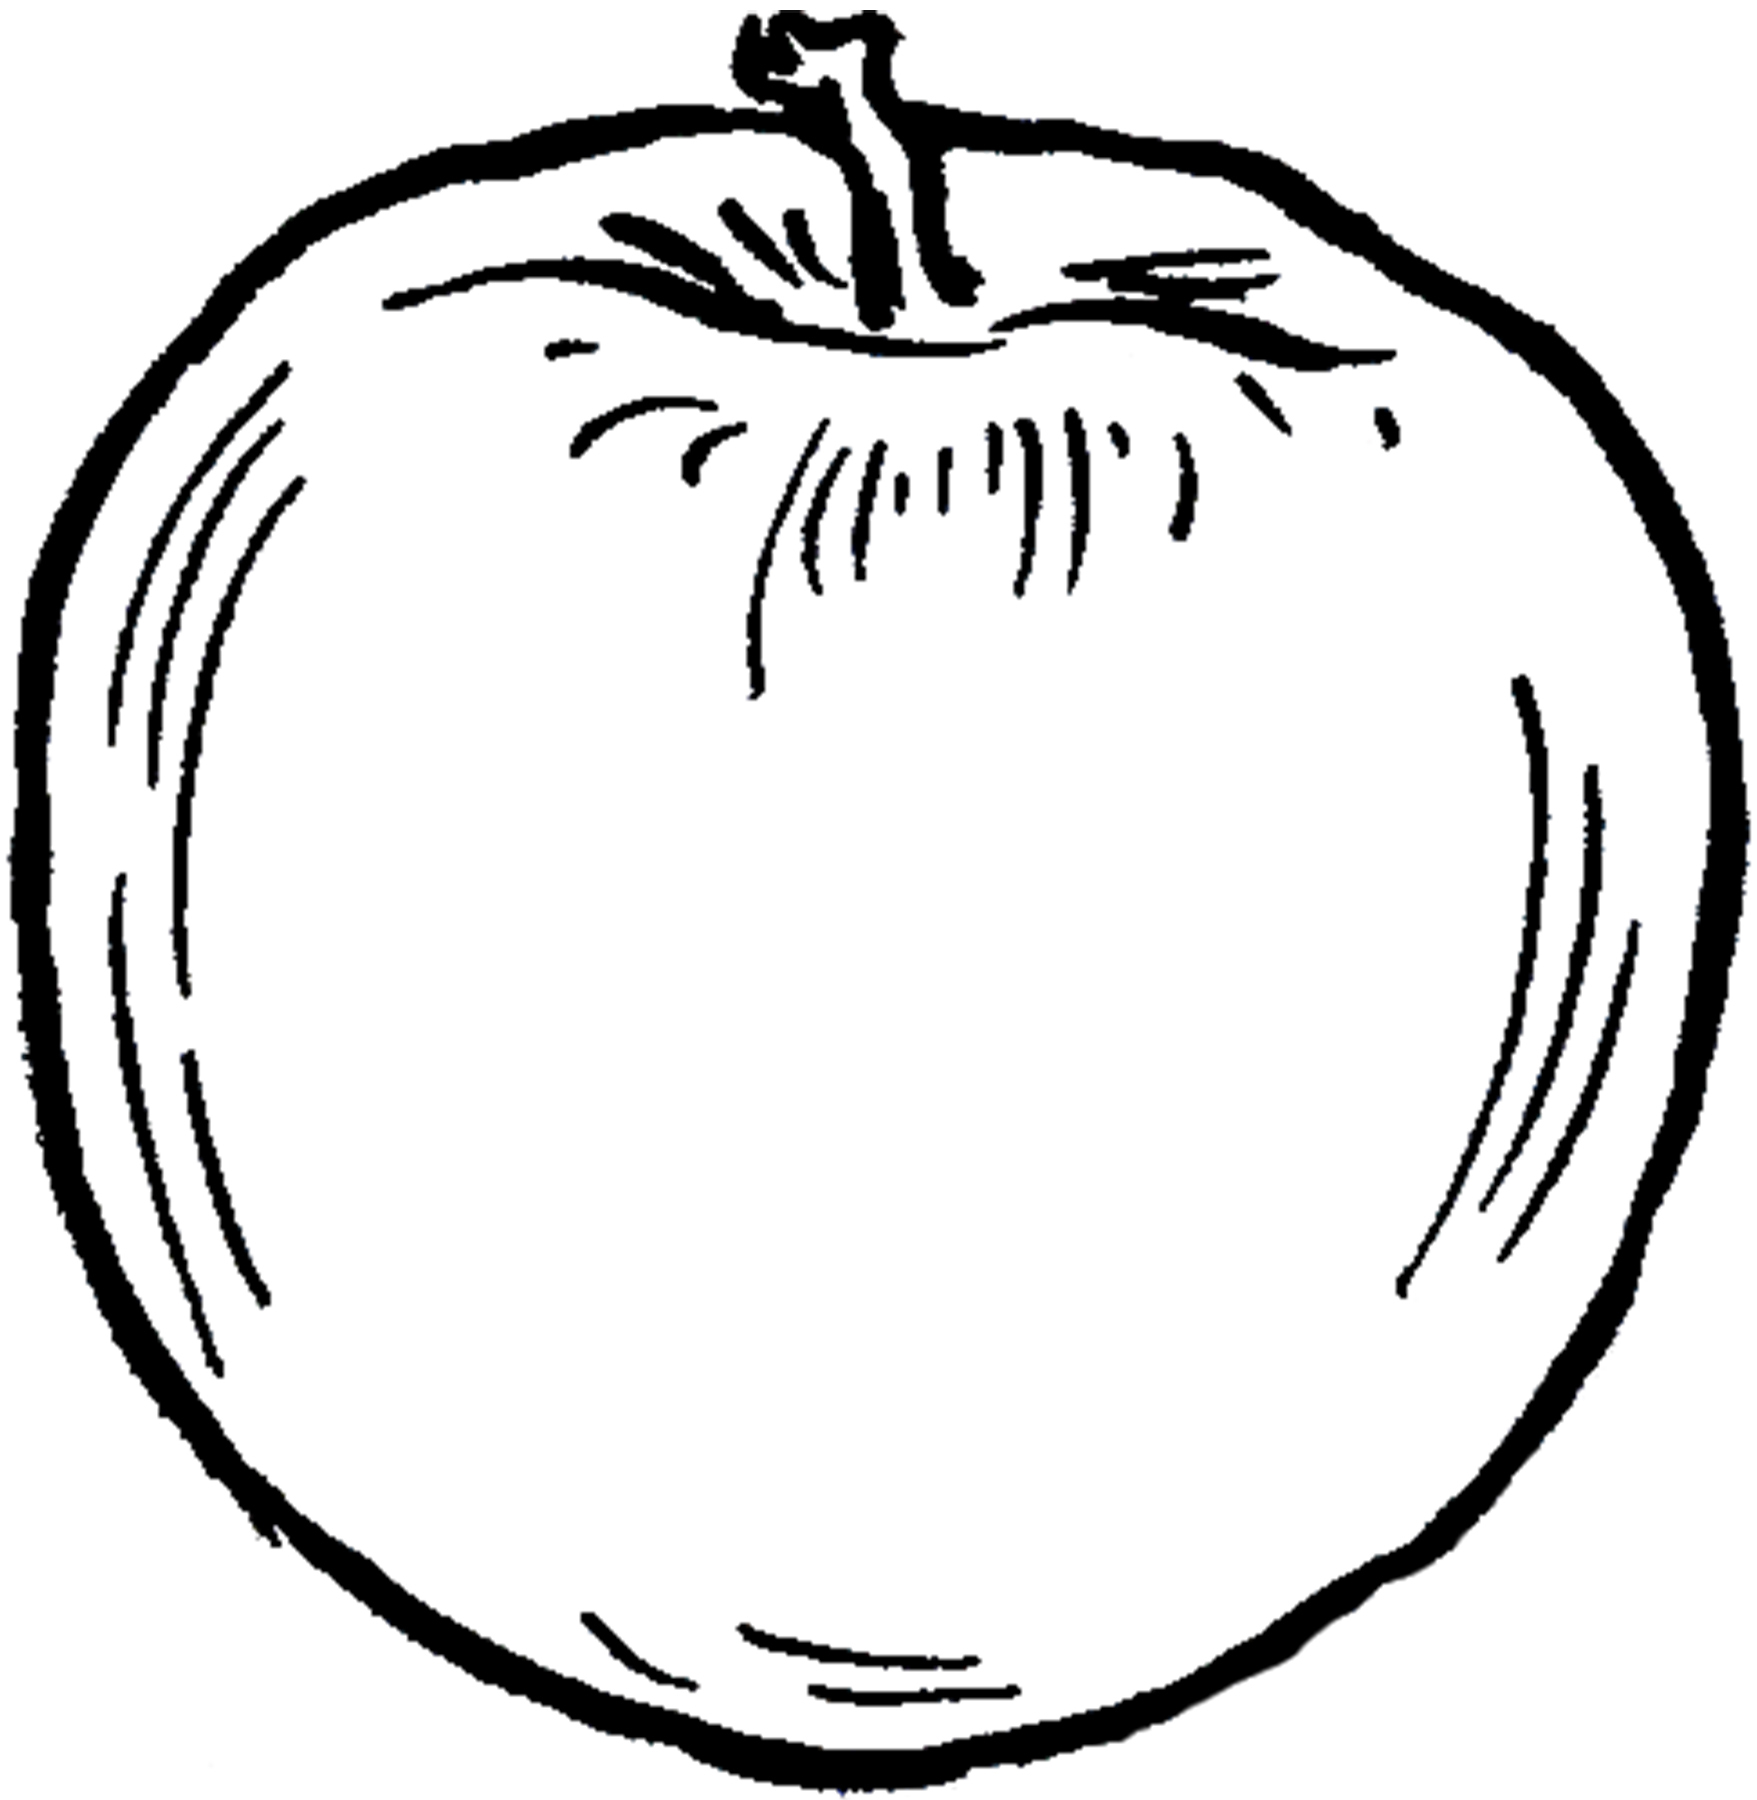 Line Drawing Clip Art : Vintage apple line drawing image the graphics fairy